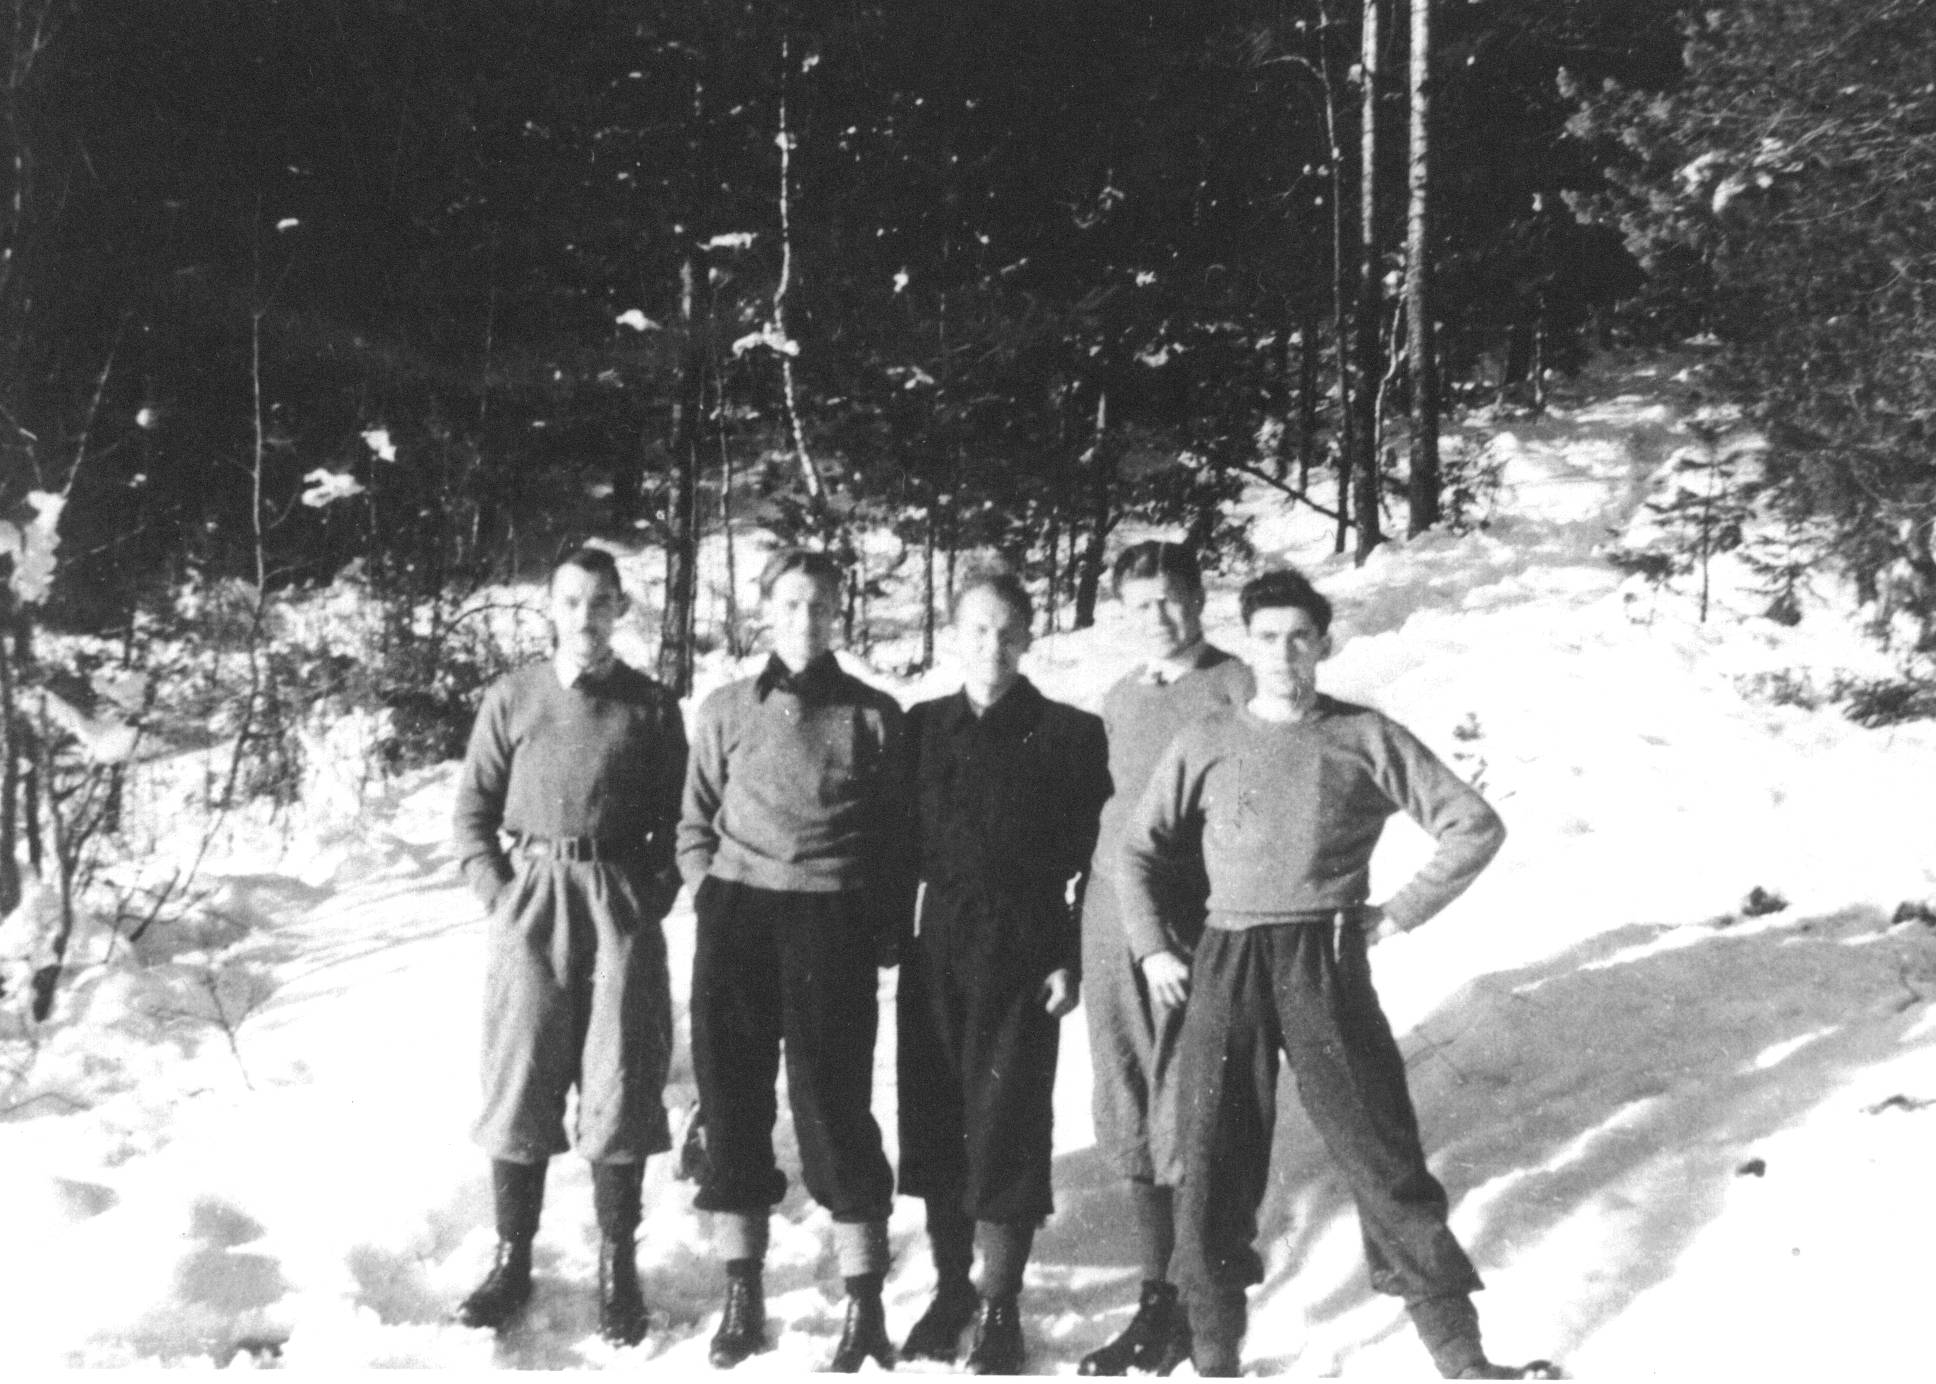 Evaders Bolton, Dalton, Chapin and Hicks with a Norwegian helper [centre]. On a supply drop to a Mil Org group in the Telemark region the Crew's Stirling iced-up and crashed. The surviving crew reached Sweden by an overland route.